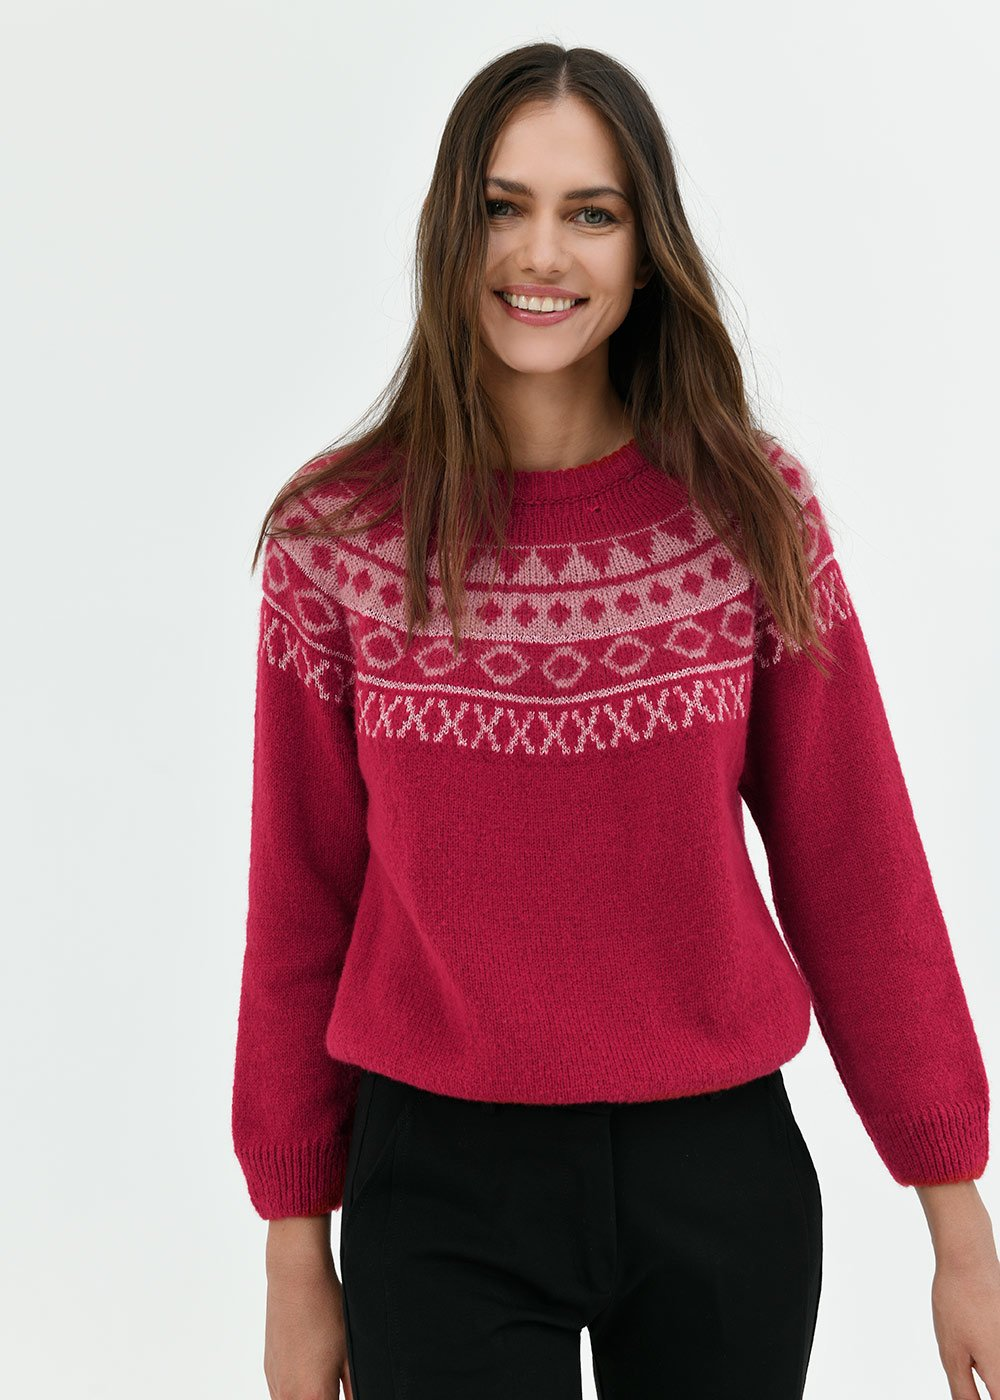 Merida wool sweater with Norwegian pattern - Porpora / Silver / Fantasia - Woman